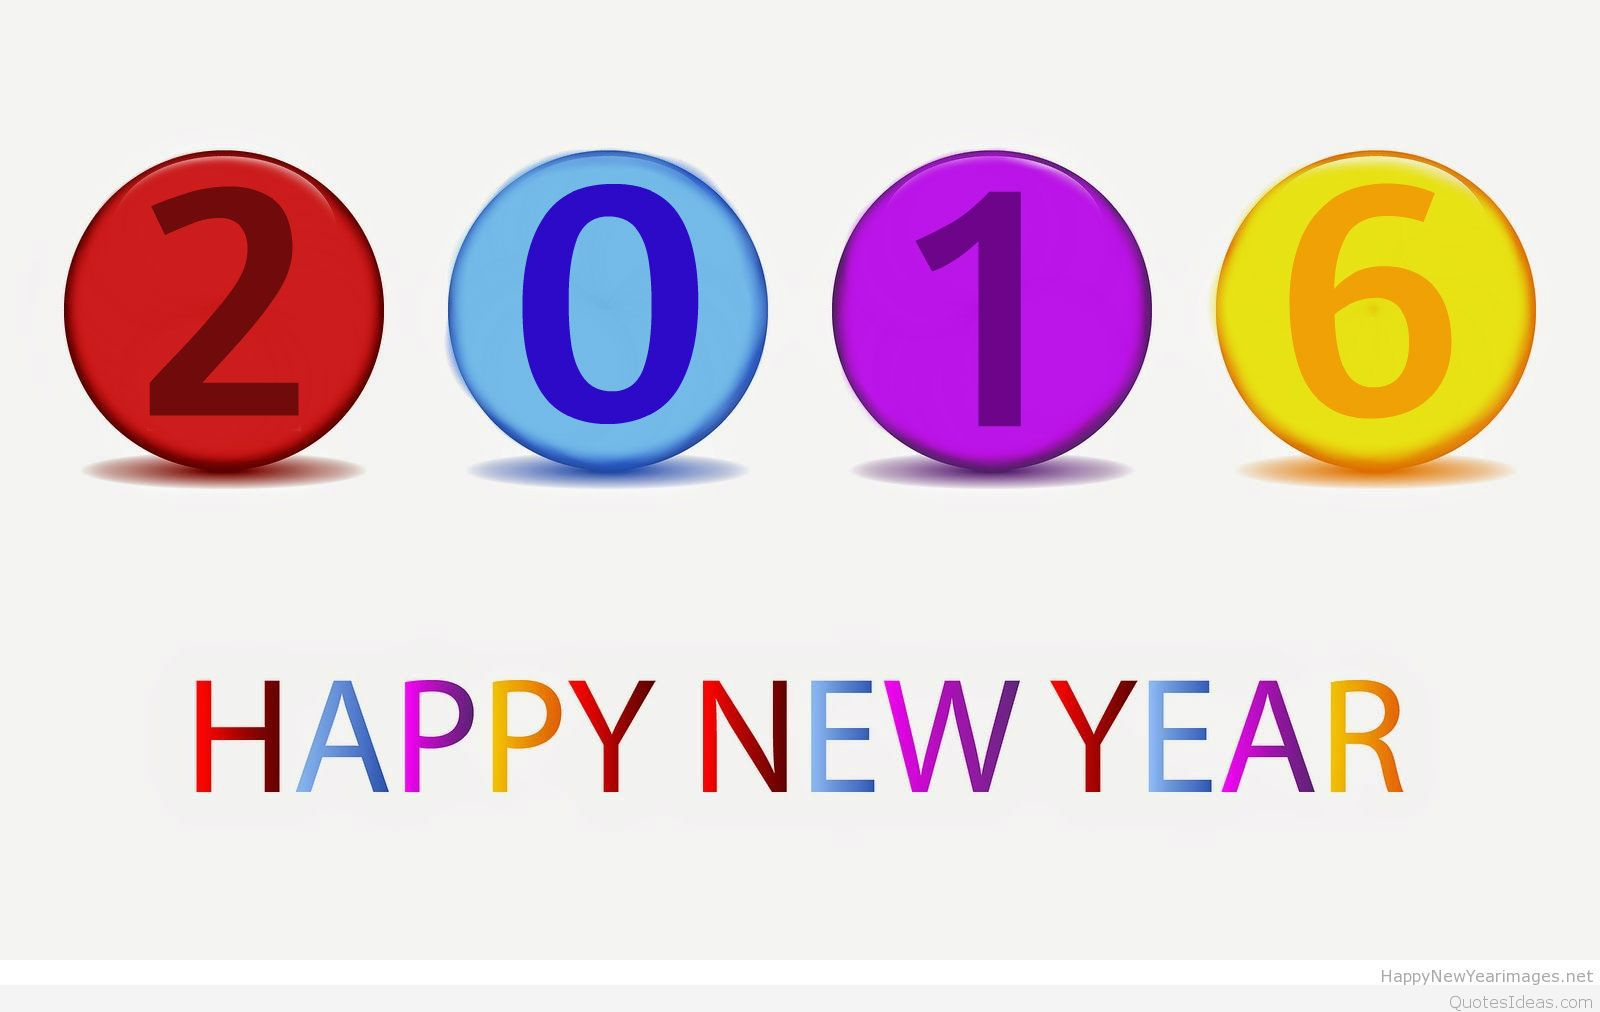 Free happy new year clipart images ...